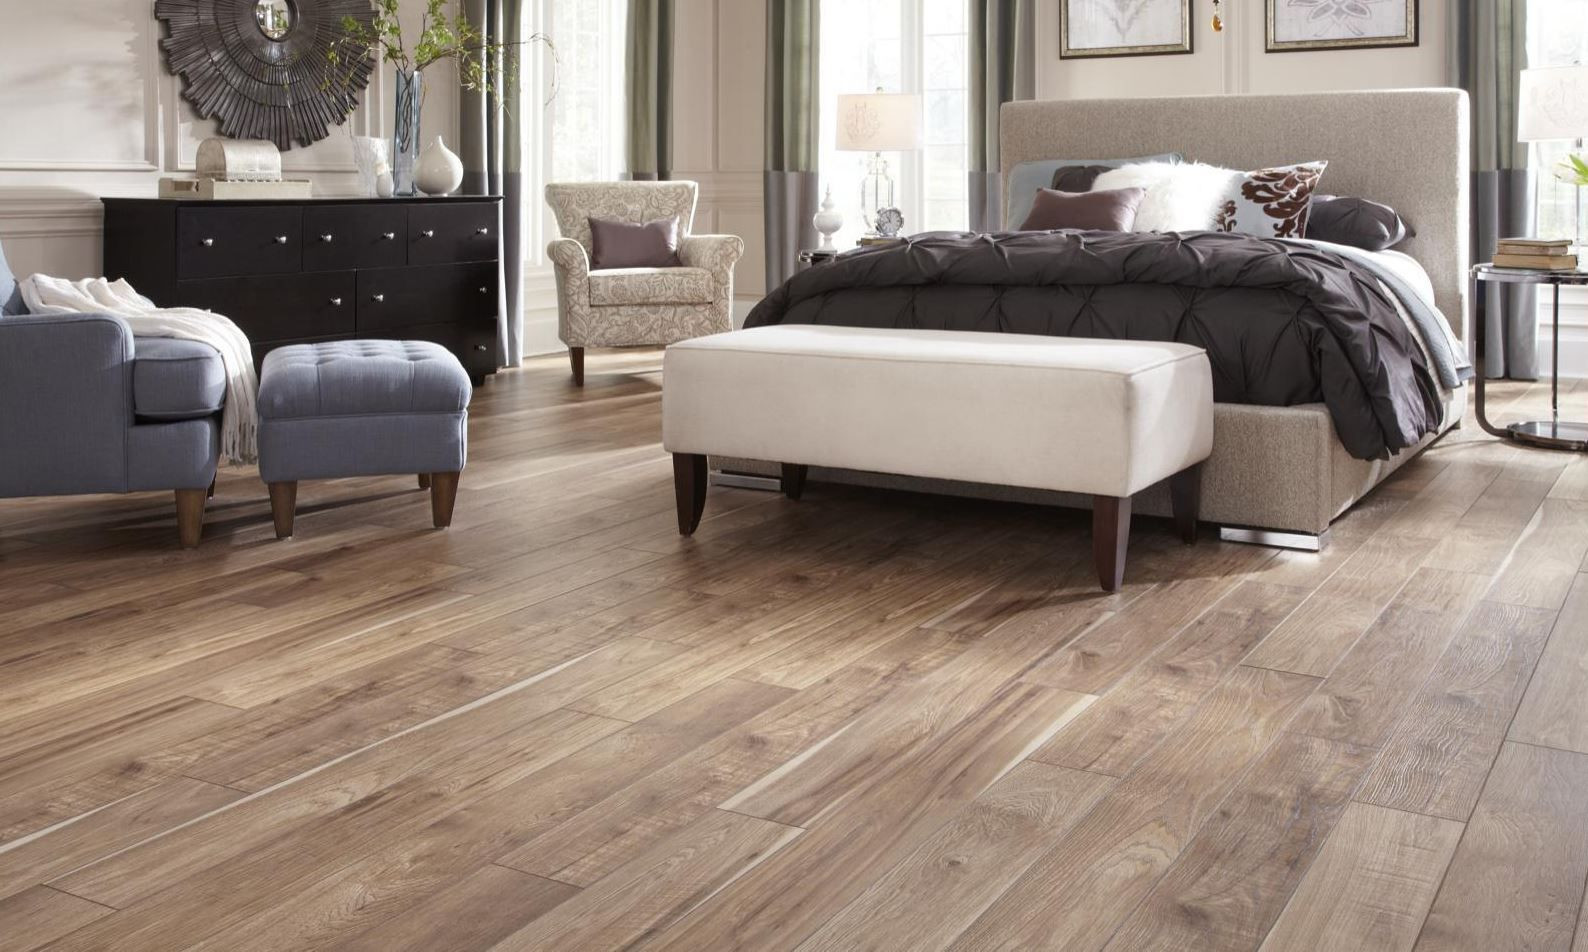 armstrong hardwood flooring canada of luxury vinyl plank flooring that looks like wood intended for mannington adura luxury vinyl plank flooring 57aa7d065f9b58974a2be49e jpg